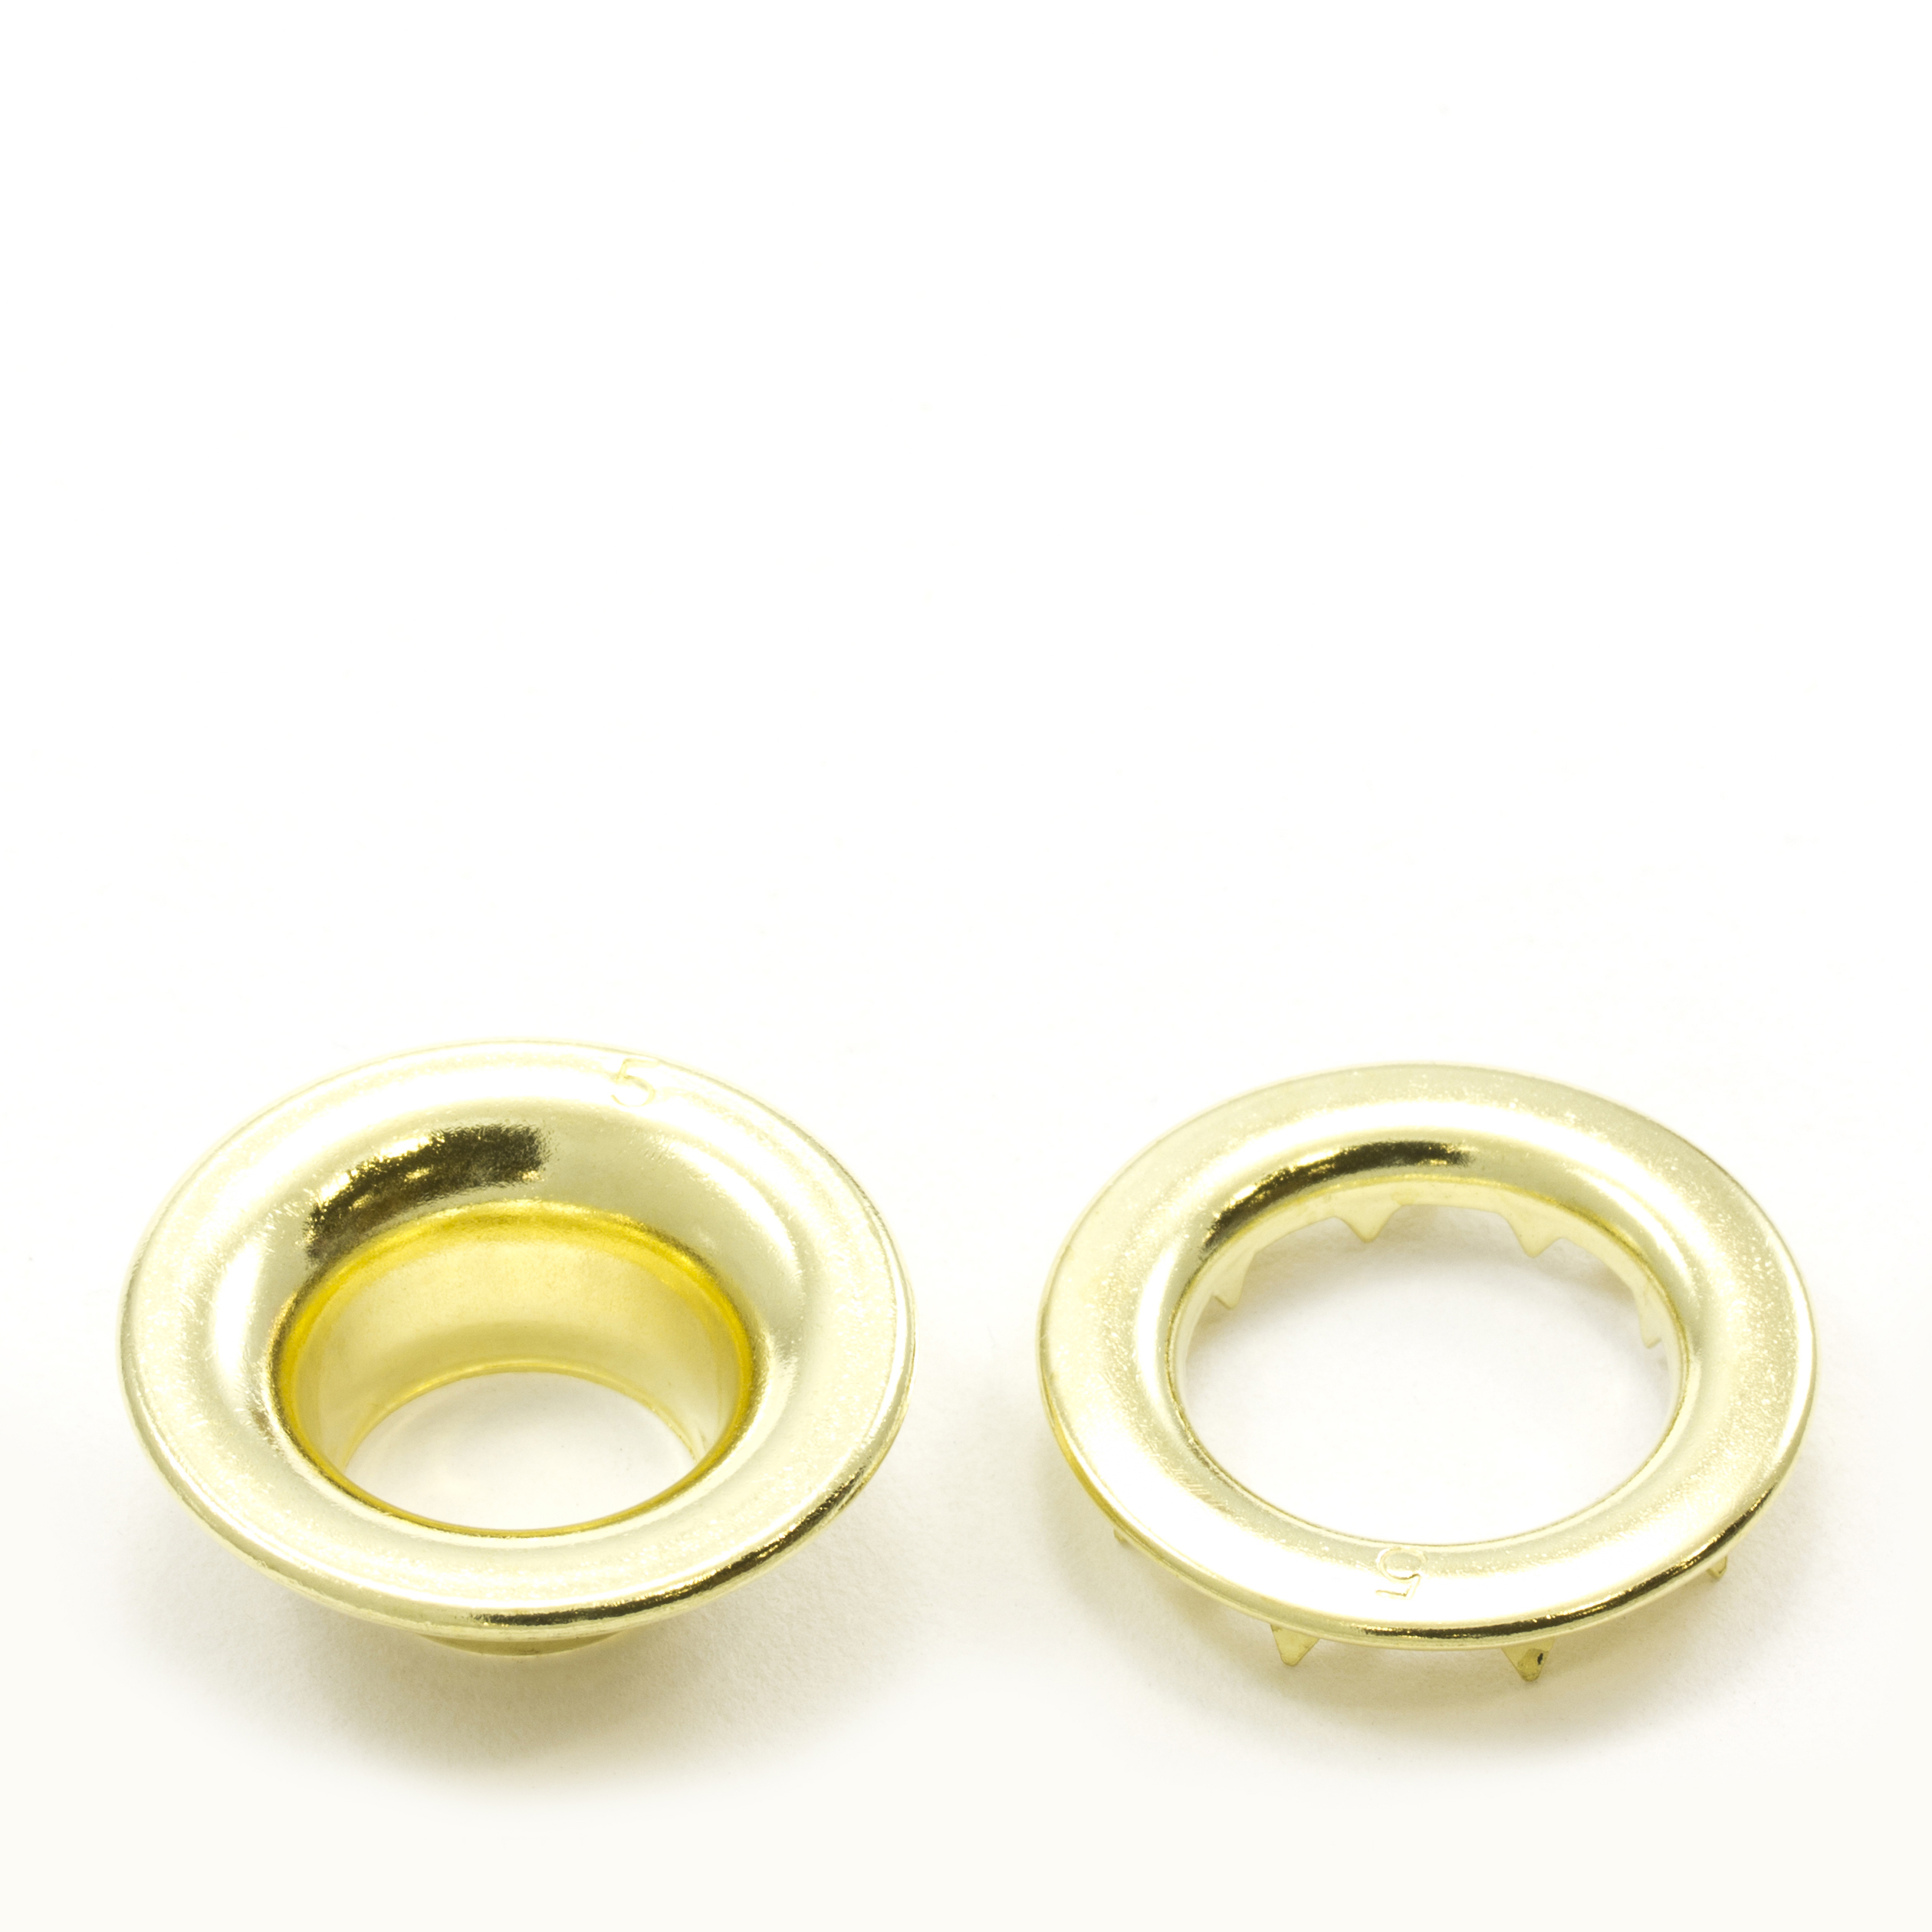 Thumbnail Rolled Rim Grommet with Spur Washer #5 Brass 5/8 1